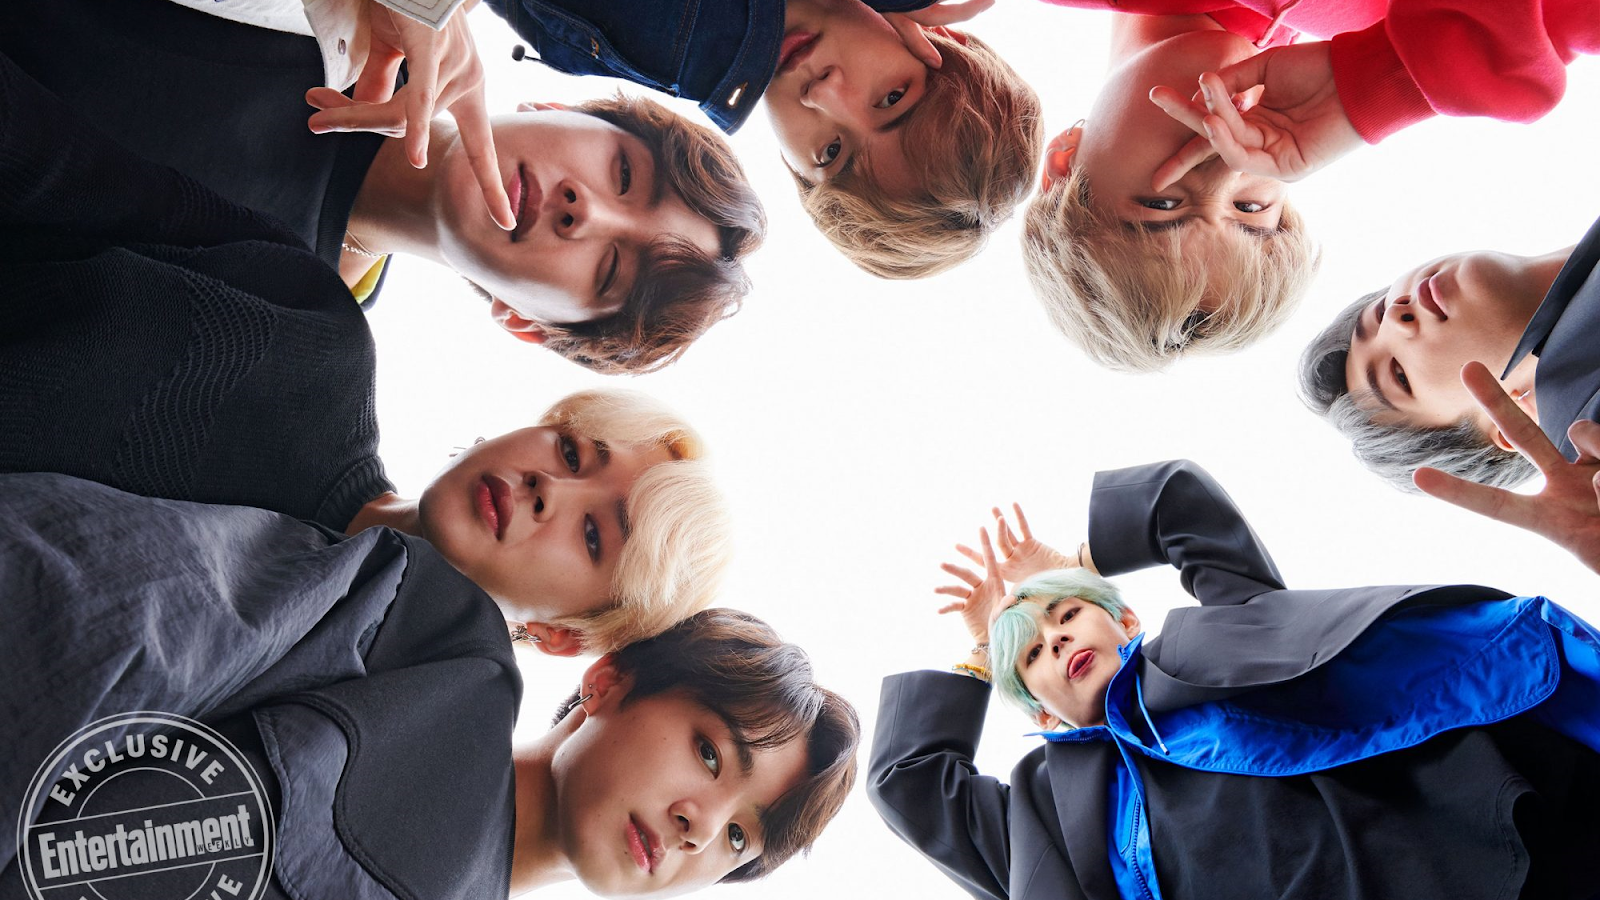 BTS Will Release Special Edition 'Map of the Soul' Light Stick